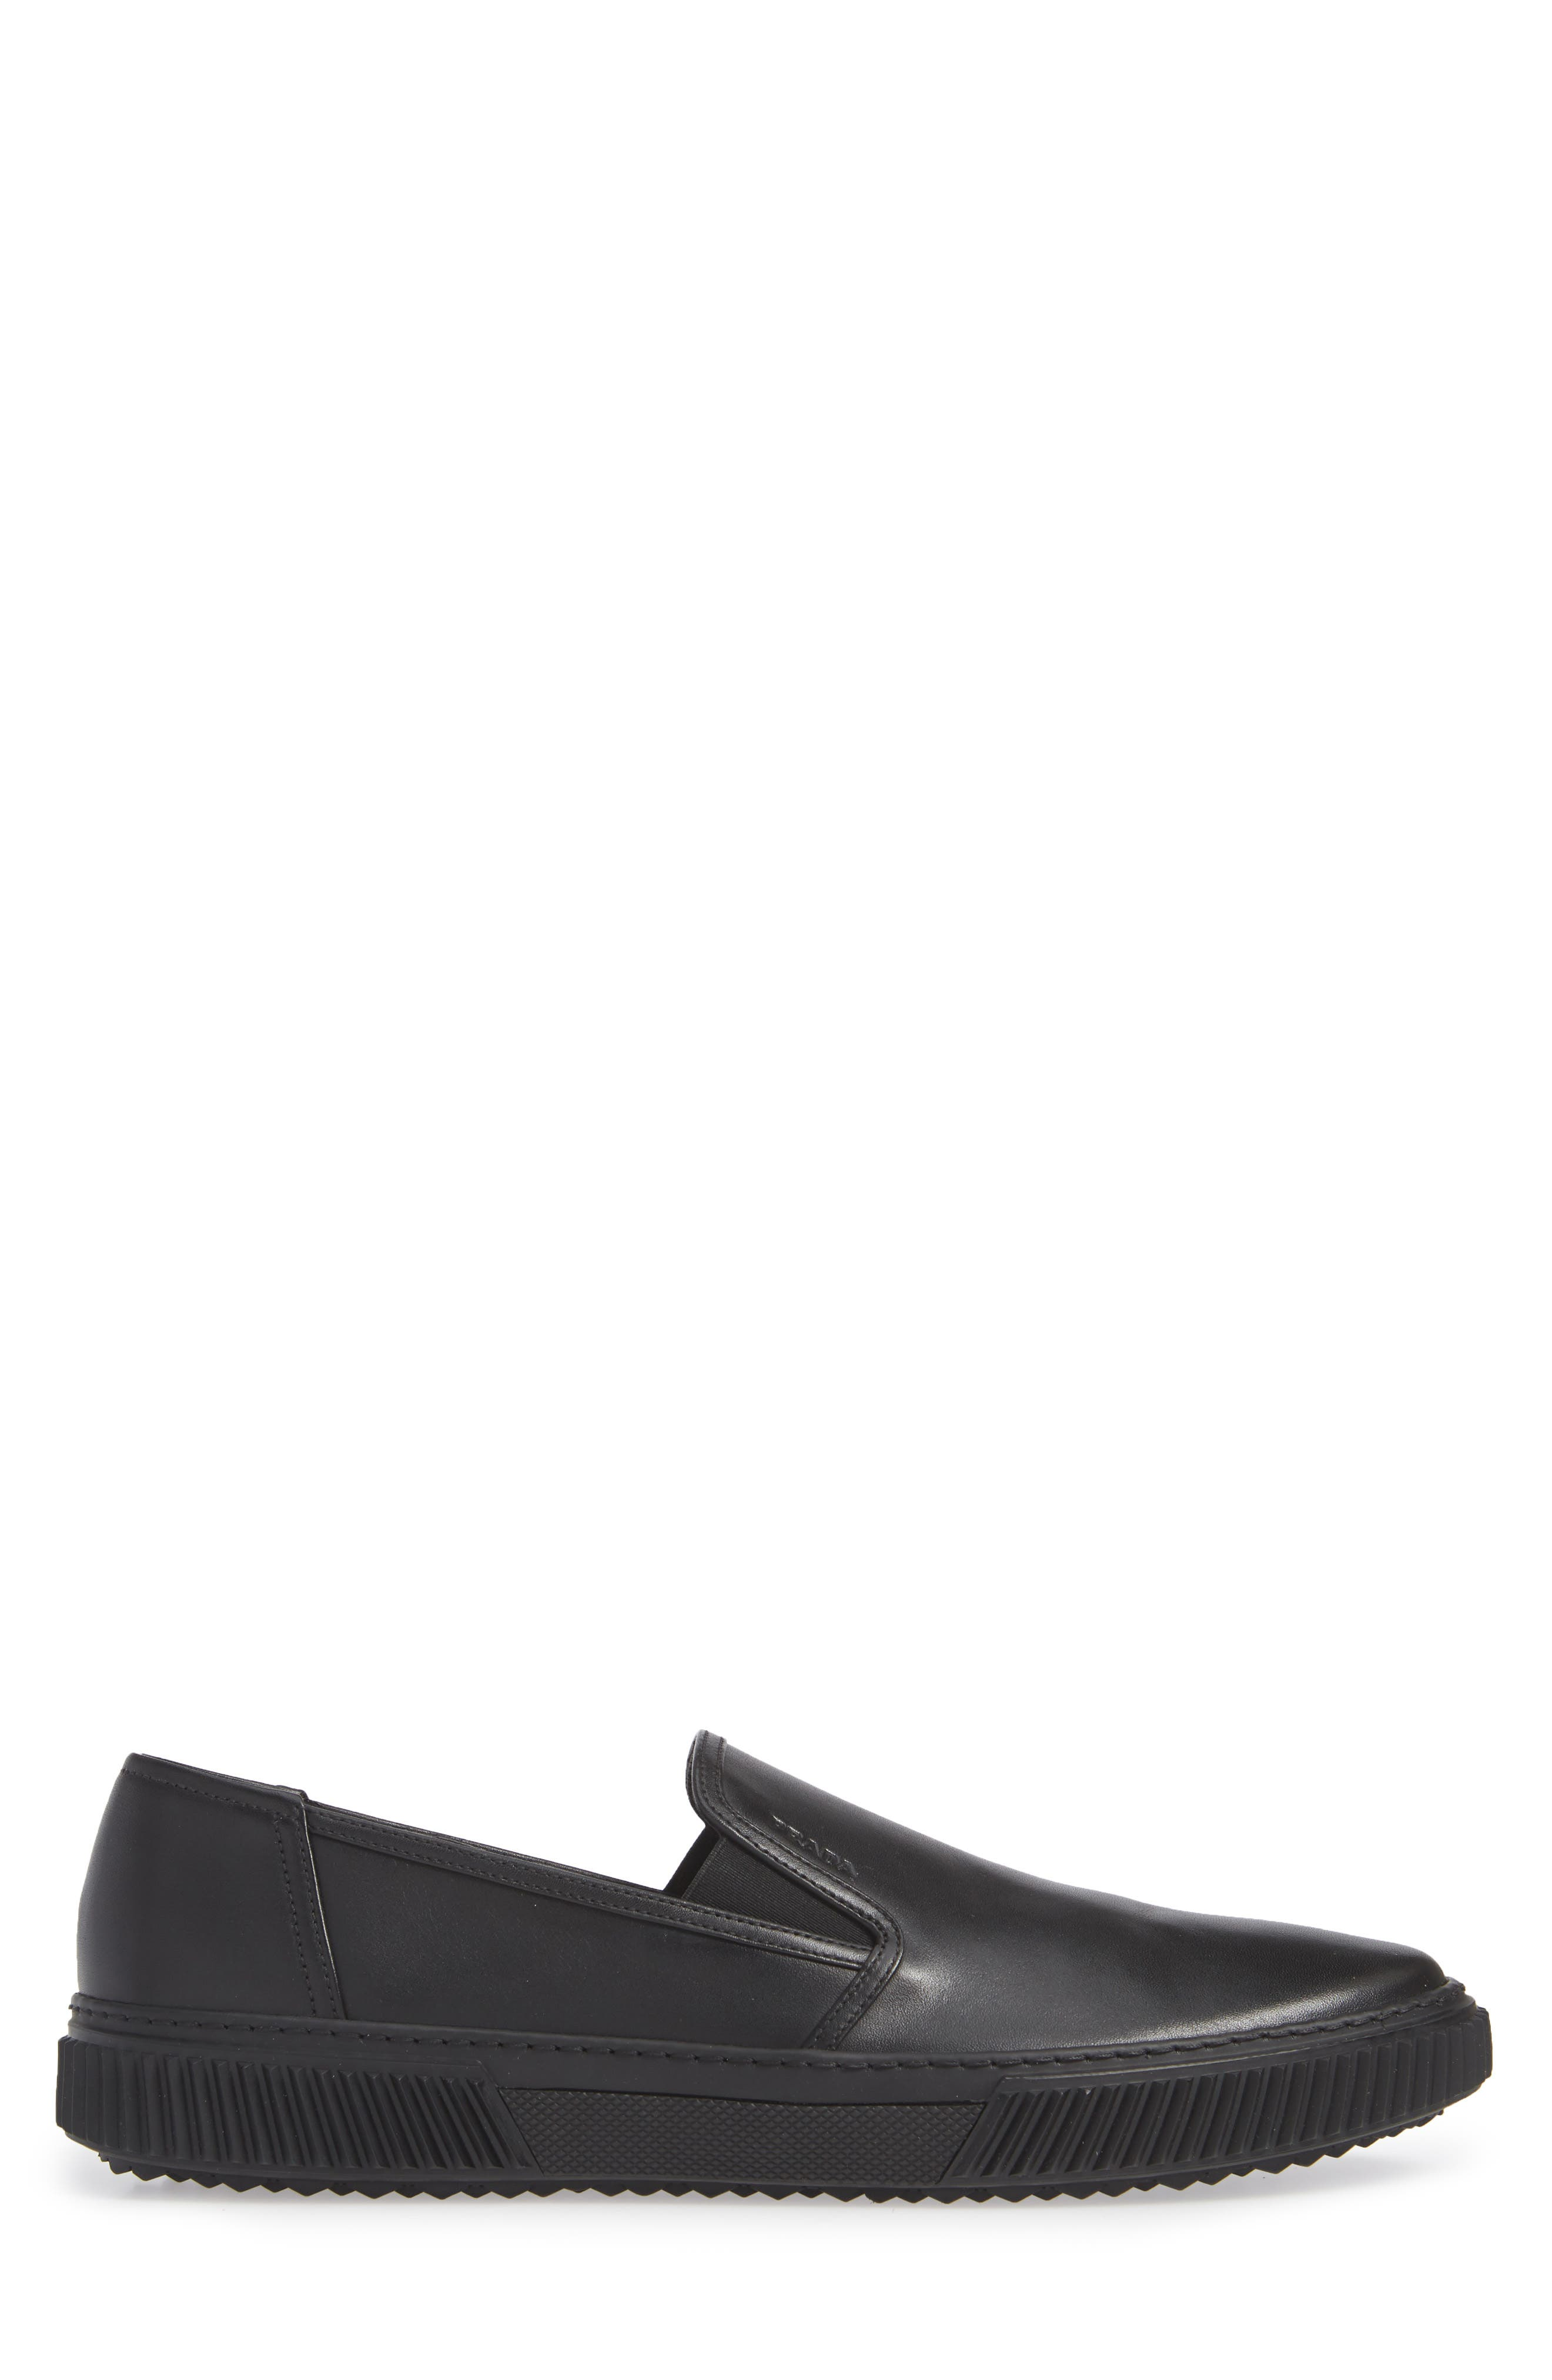 Stratus Slip-On Sneaker,                             Alternate thumbnail 3, color,                             NERO/ NERO